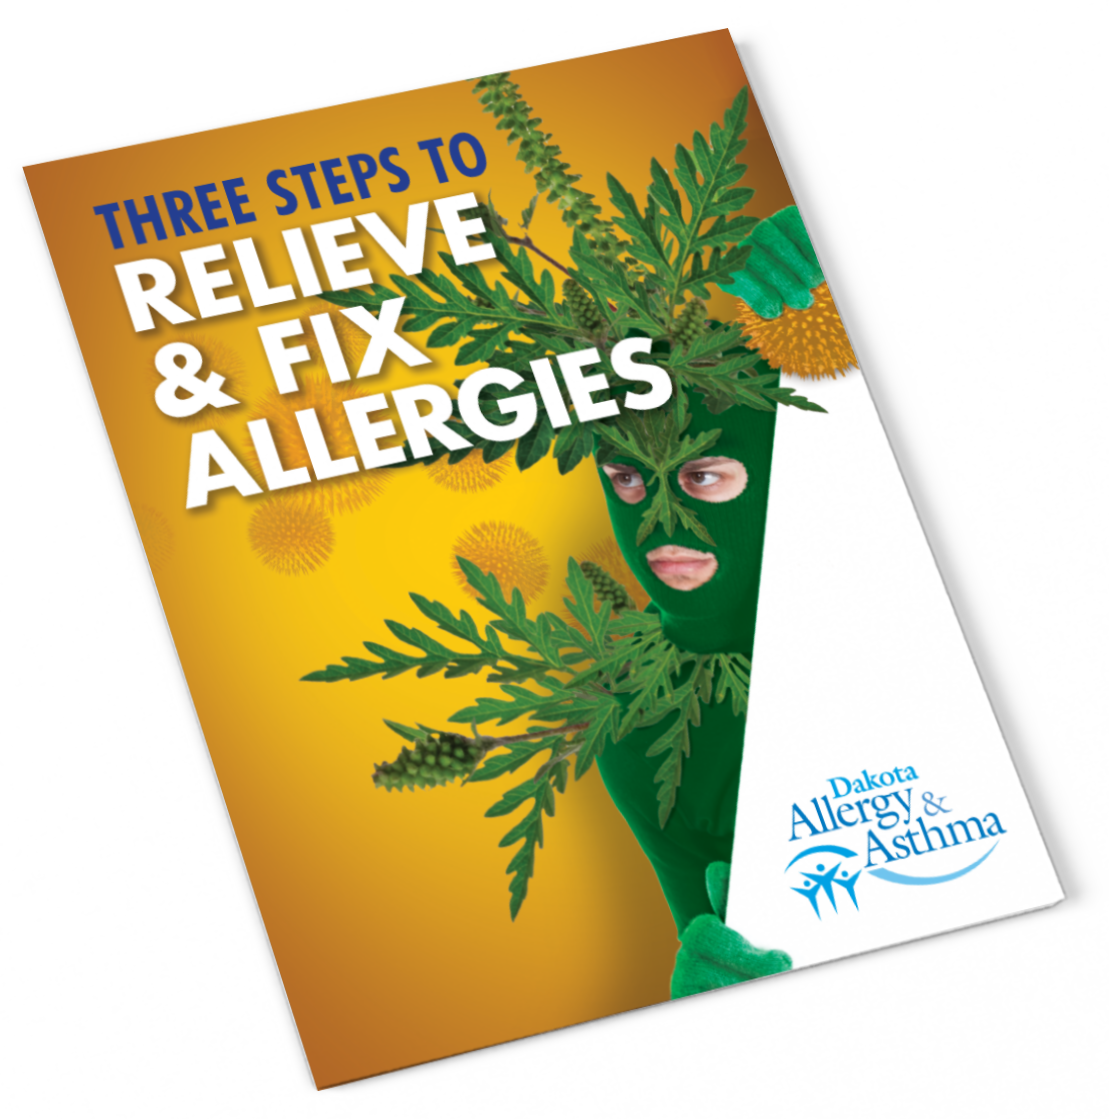 Three Steps To Relieve & Fix Allergies